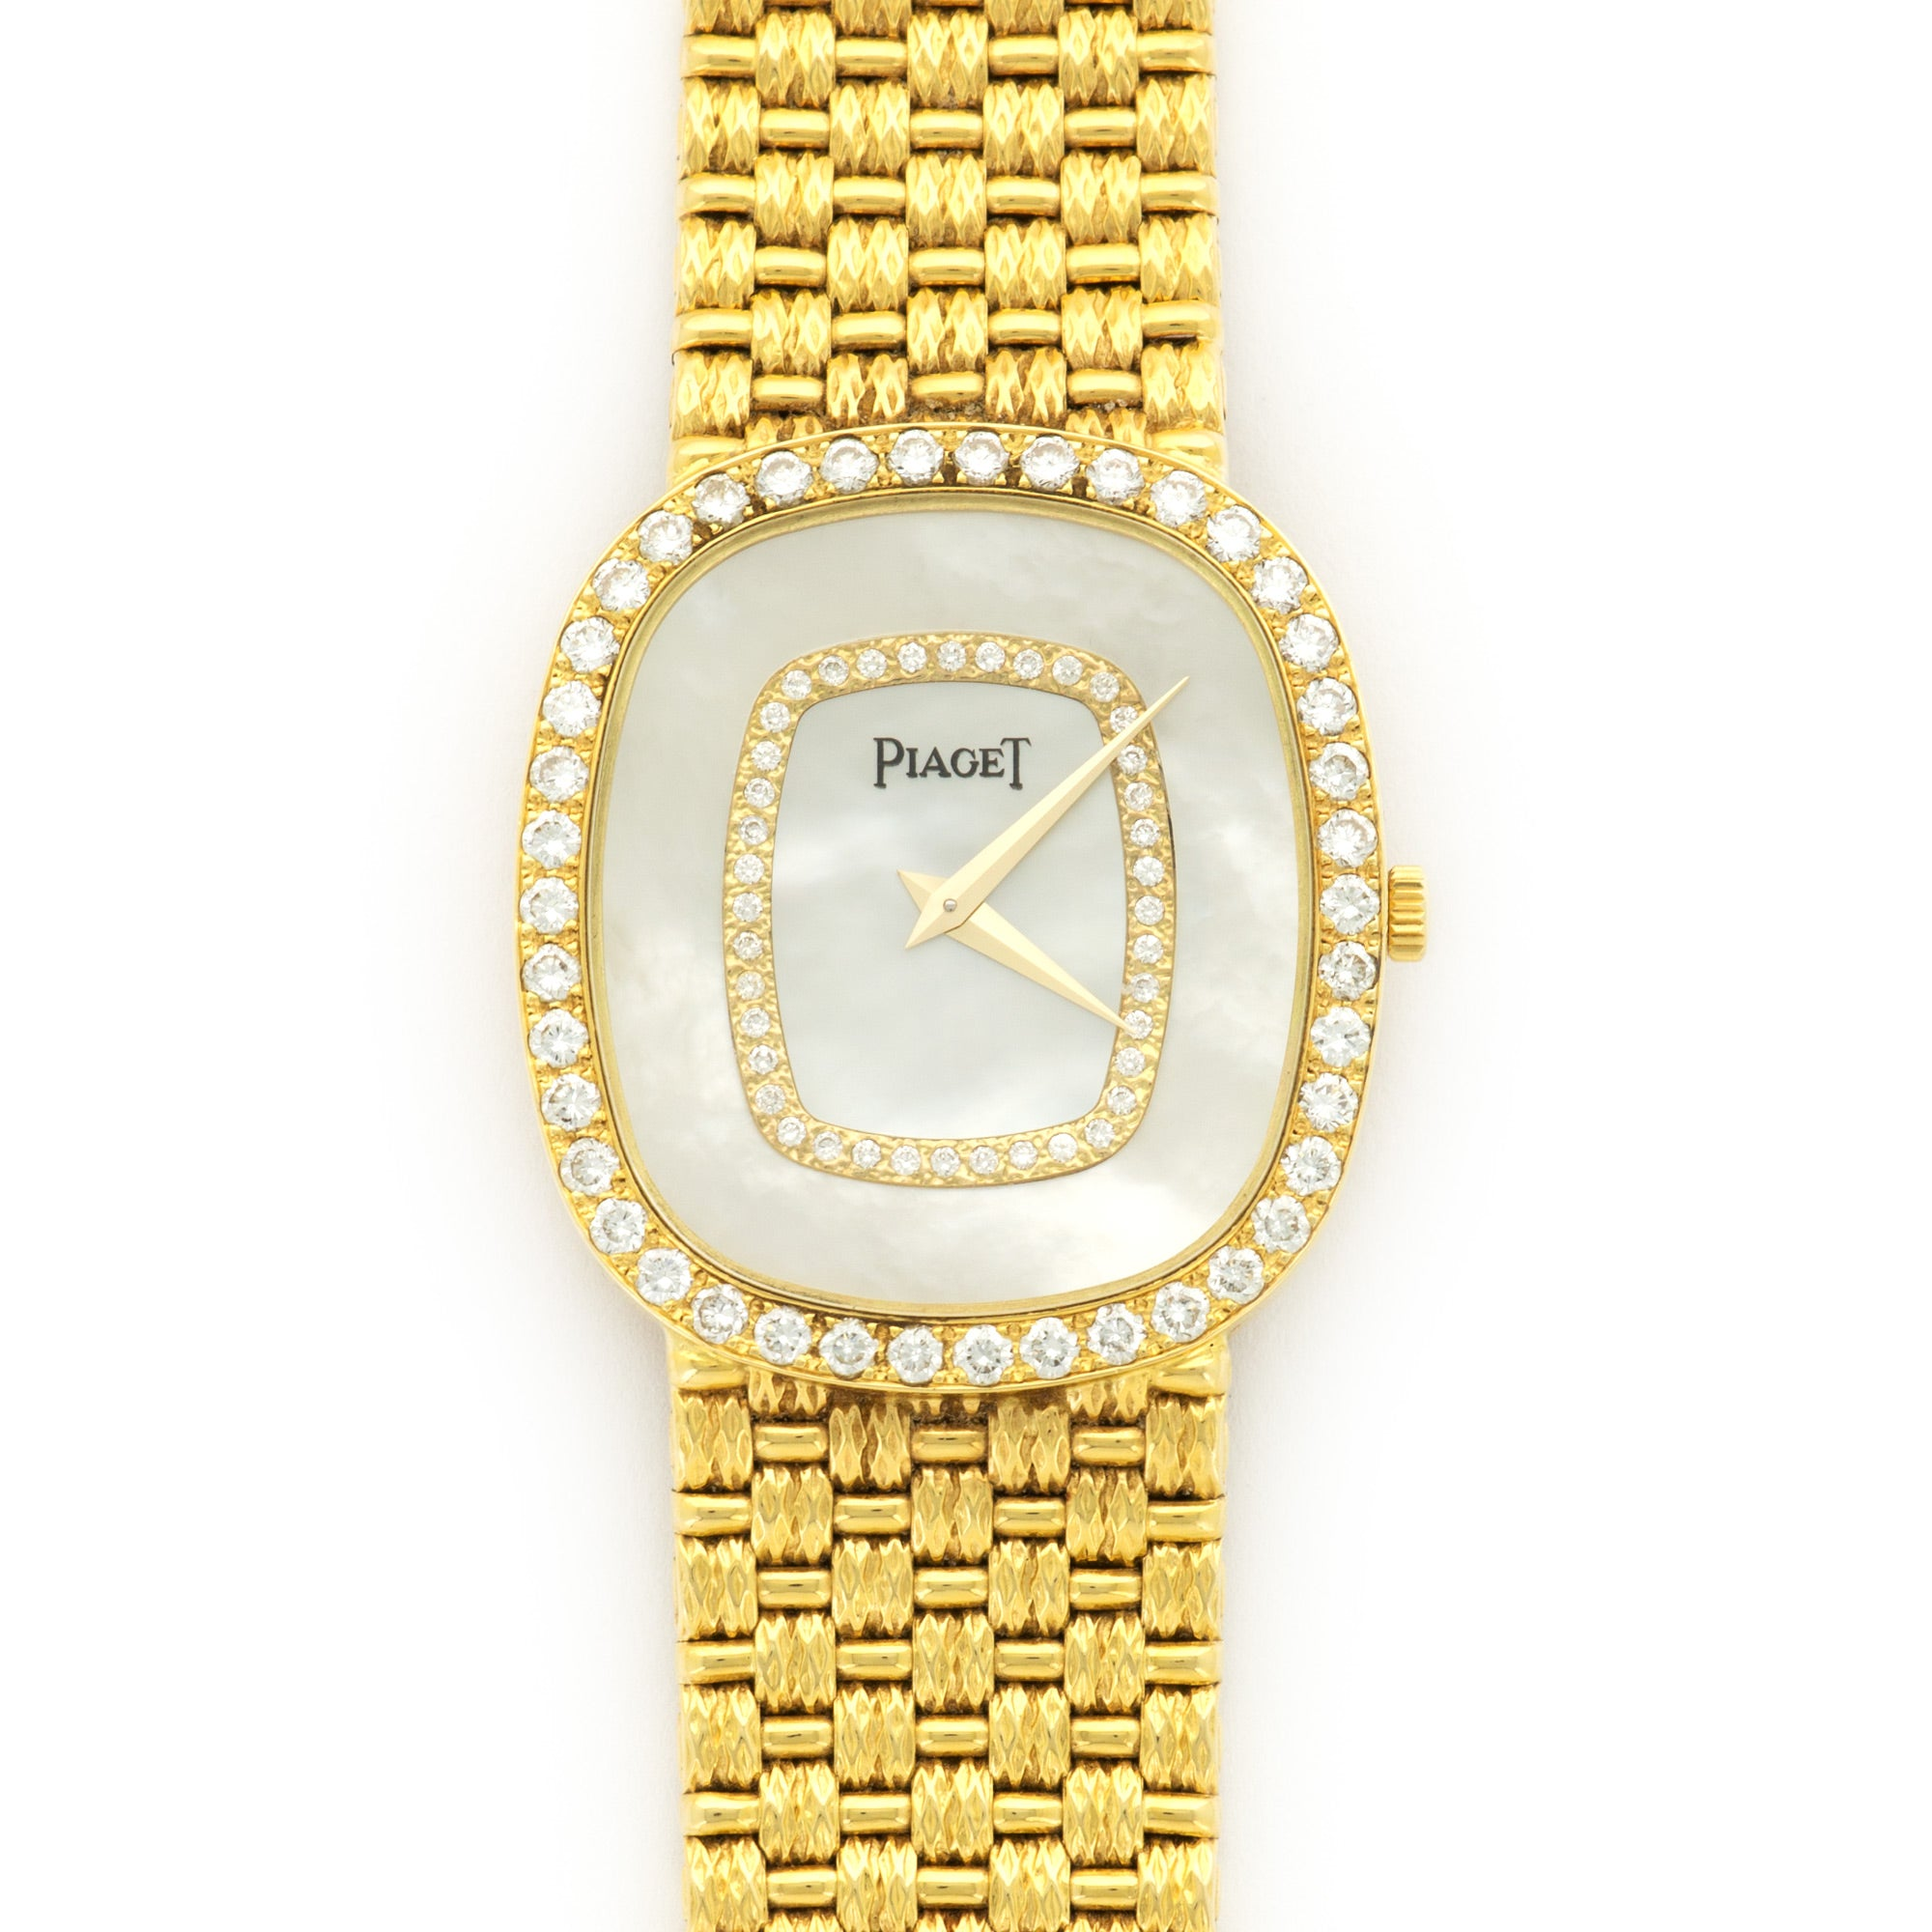 Piaget Vintage 84431 18k YG  Excellent Ladies 18k YG Mother of Pearl with Diamonds 28mm X 32mm Manual 1980s Yellow Gold Bracelet (180mm) Handmade Leather Travel Pouch